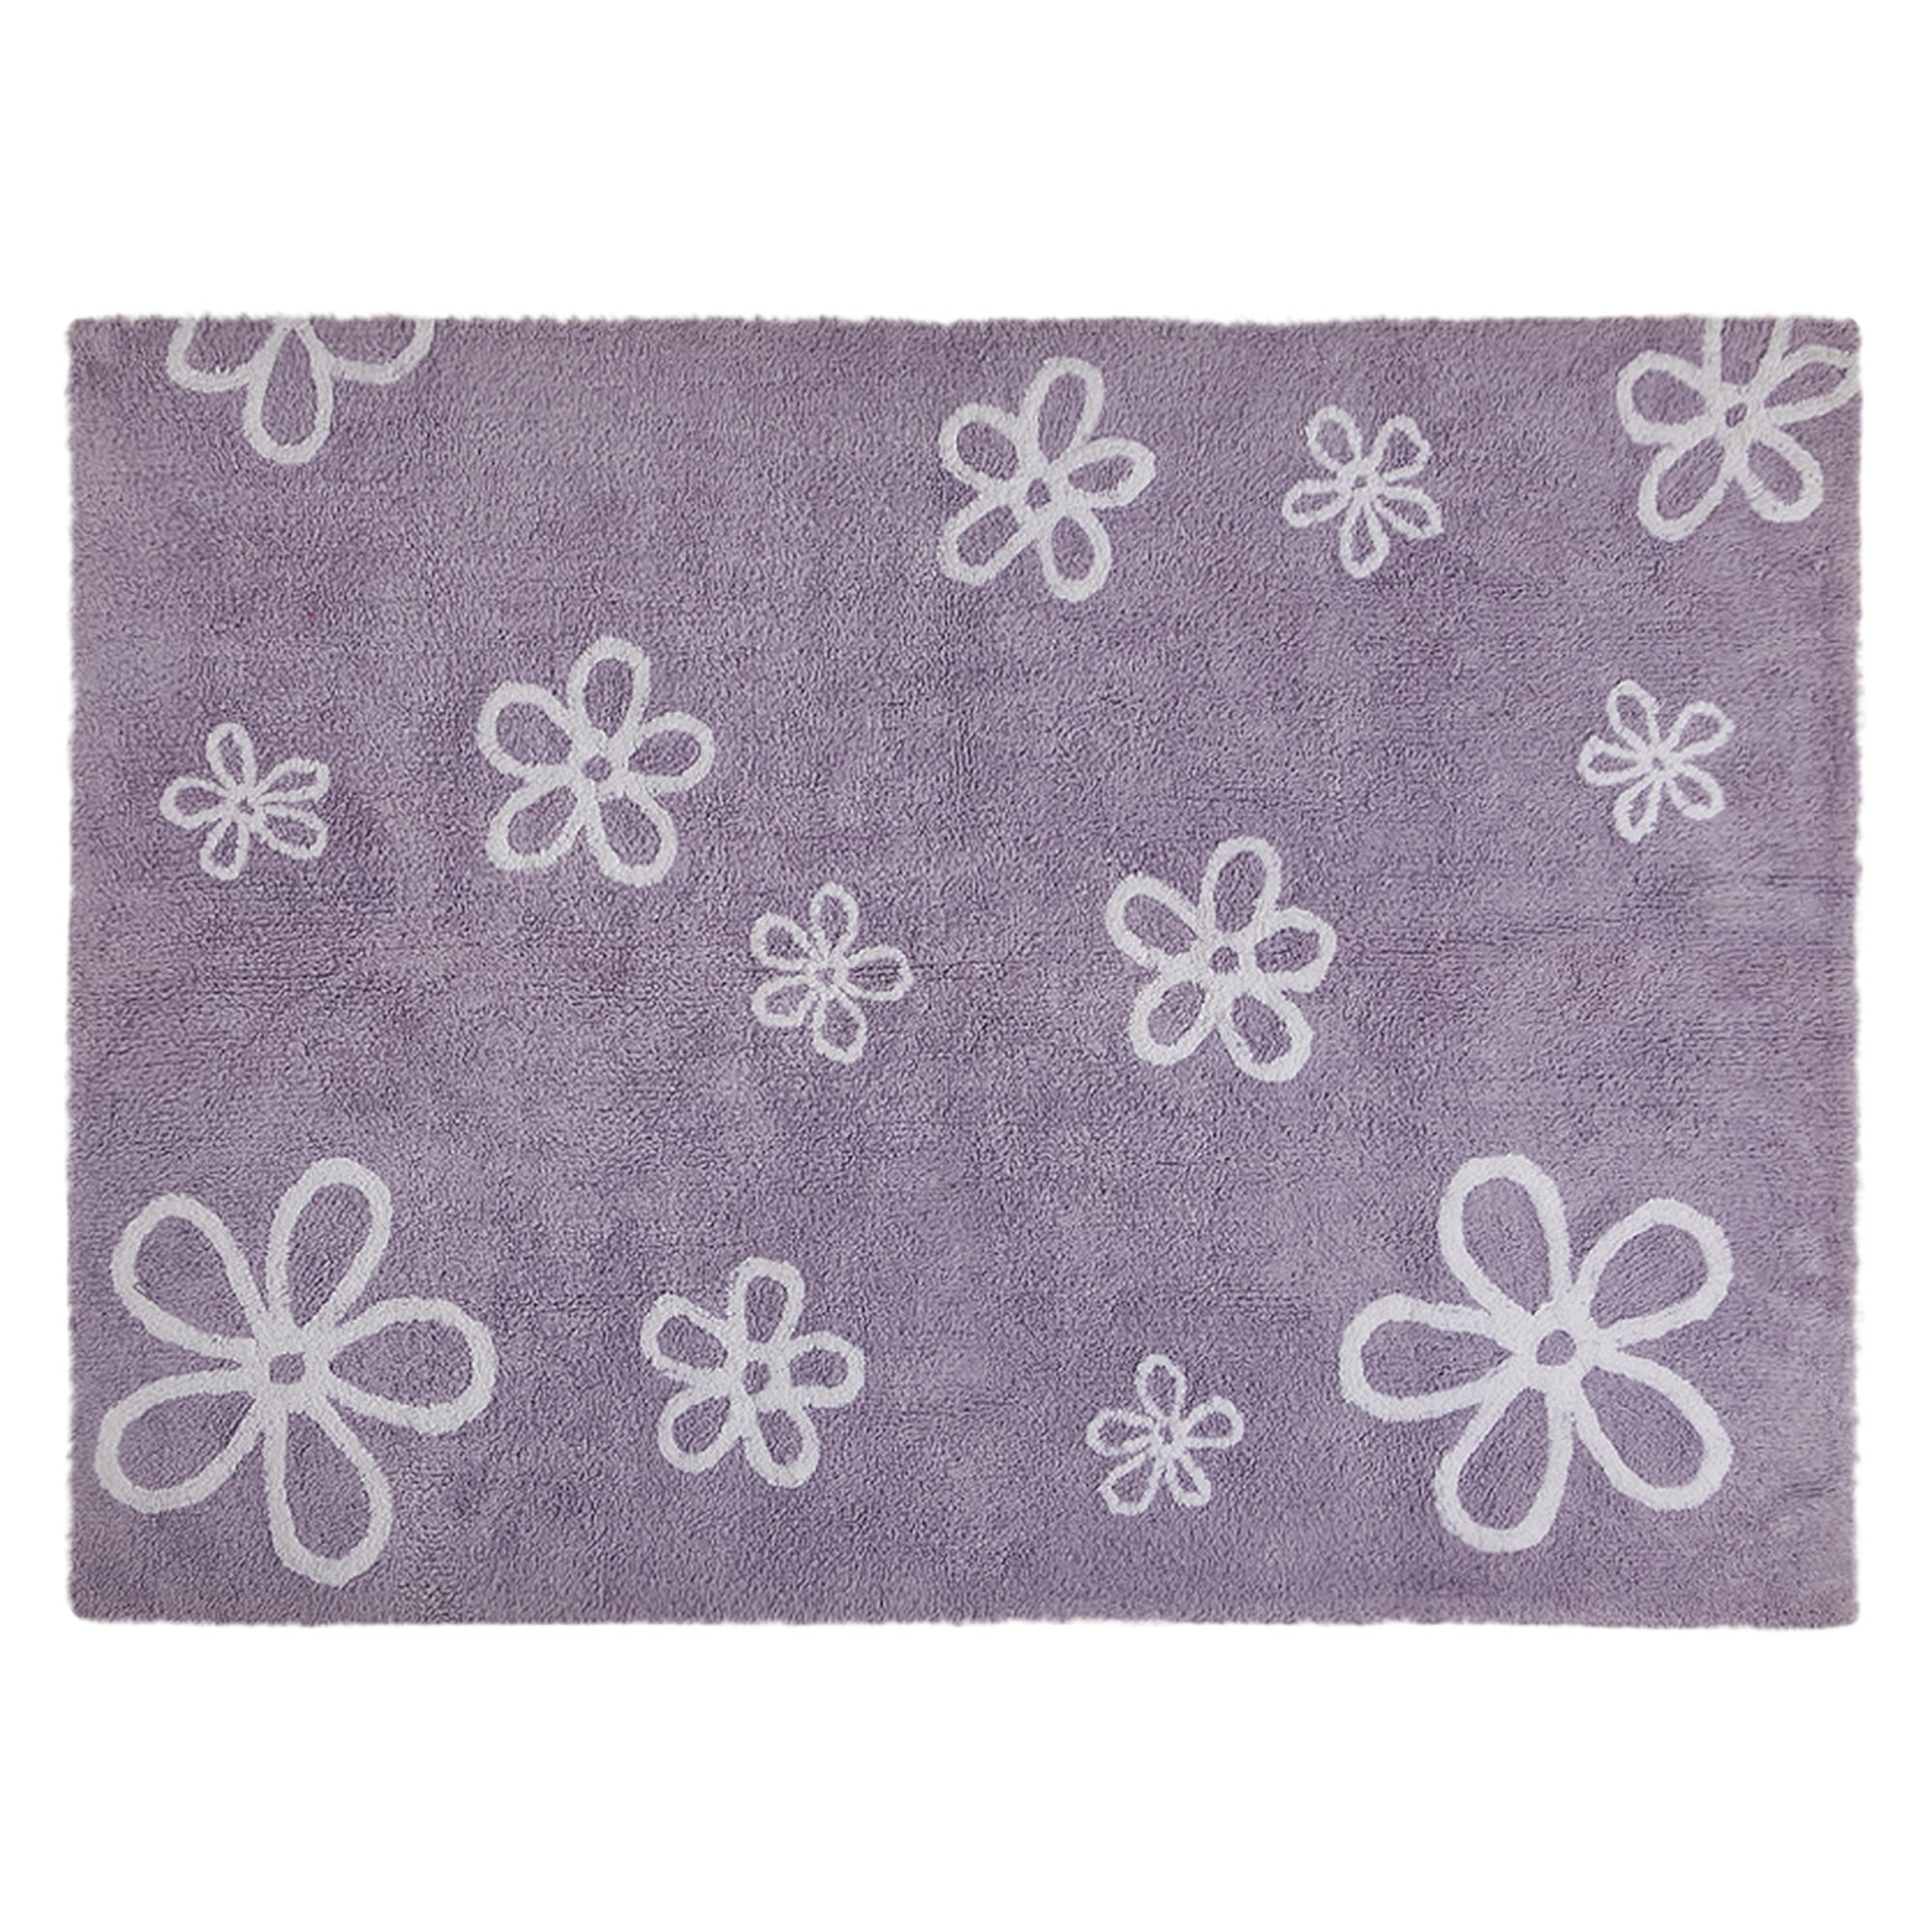 Lorena Canals Purple Flowers Washable Children's Rug - Machine Washable, Perfect for the Nursery - Handmade from 100% Natural Cotton and Non-Toxic Dyes